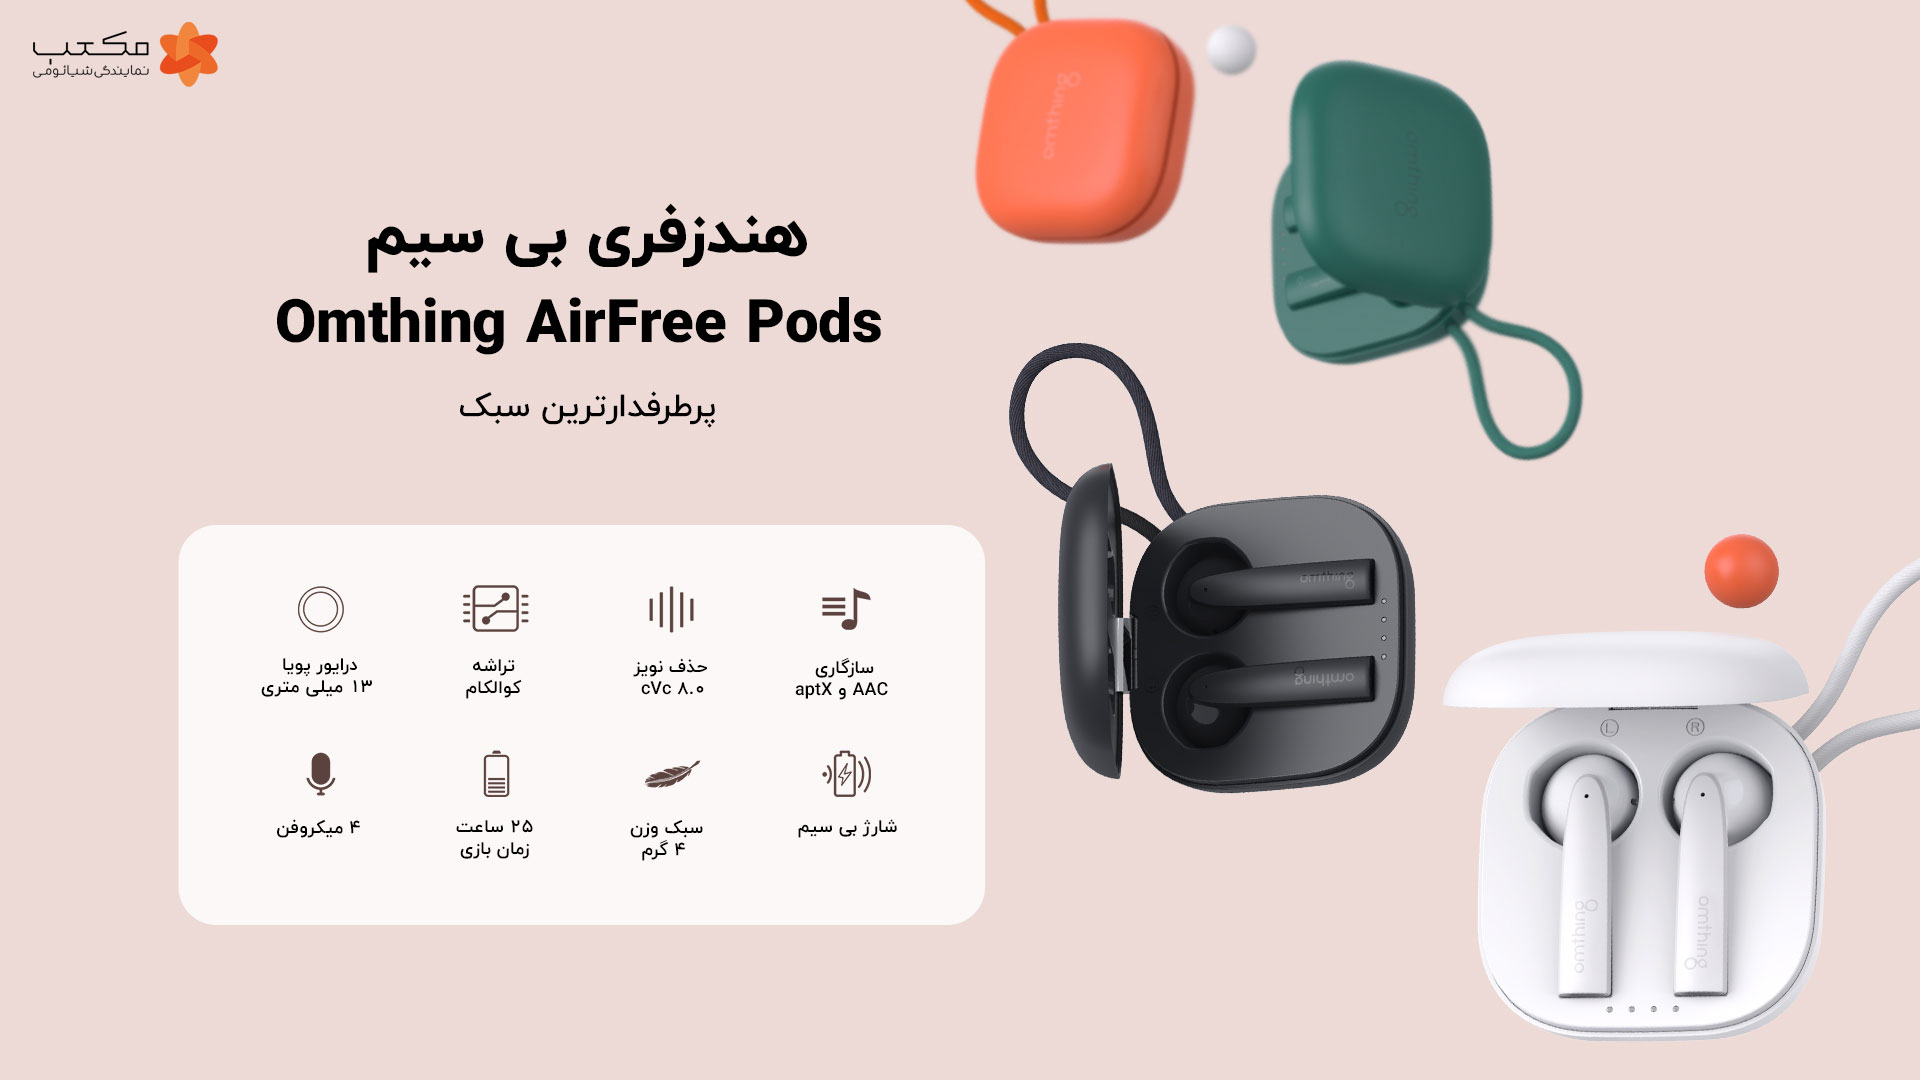 Omthing-AirFree-Pods